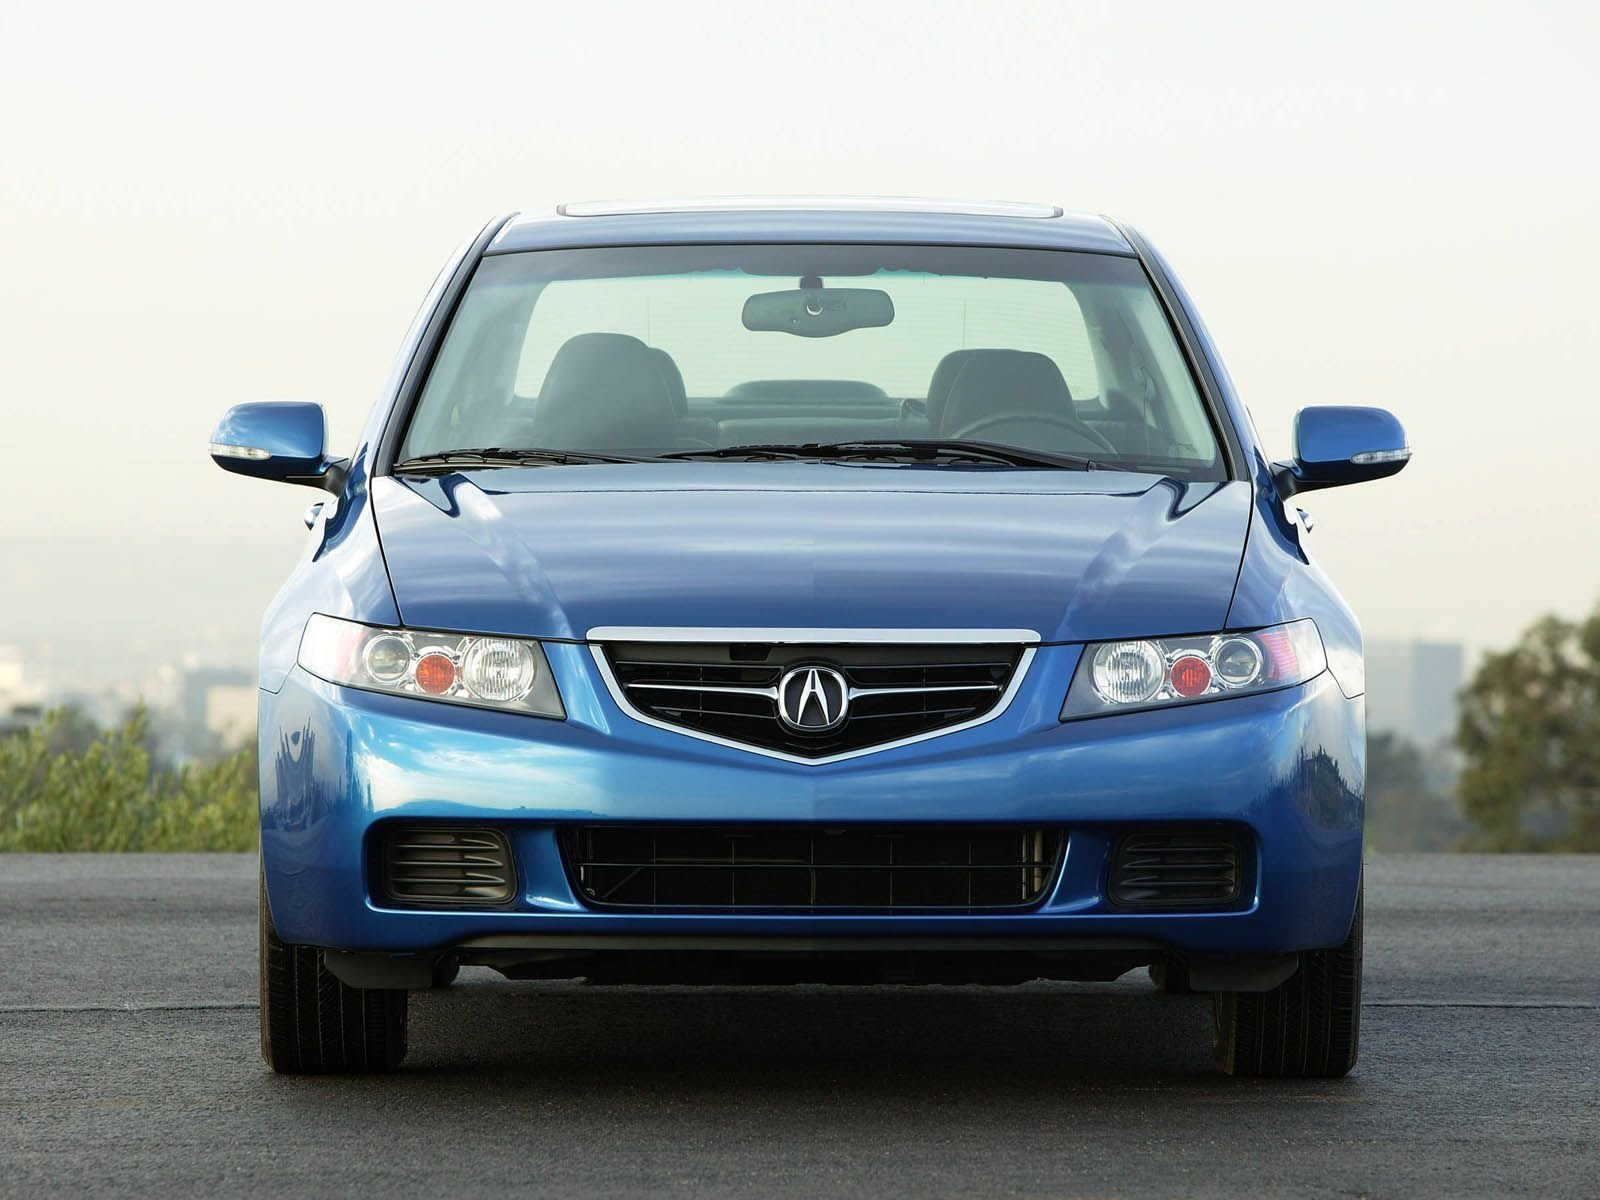 2005 acura tsx picture 29078 car review top speed. Black Bedroom Furniture Sets. Home Design Ideas